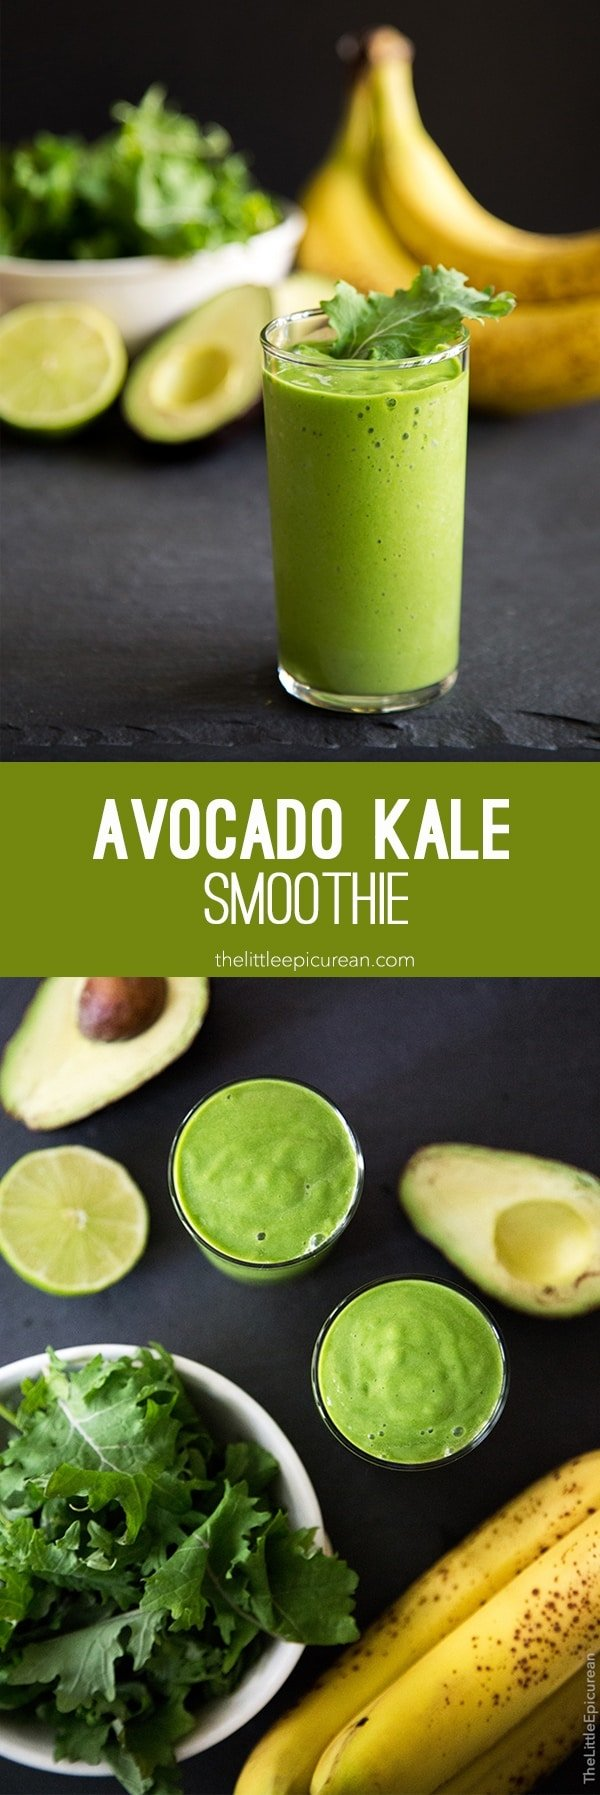 Avocado Kale Smoothie